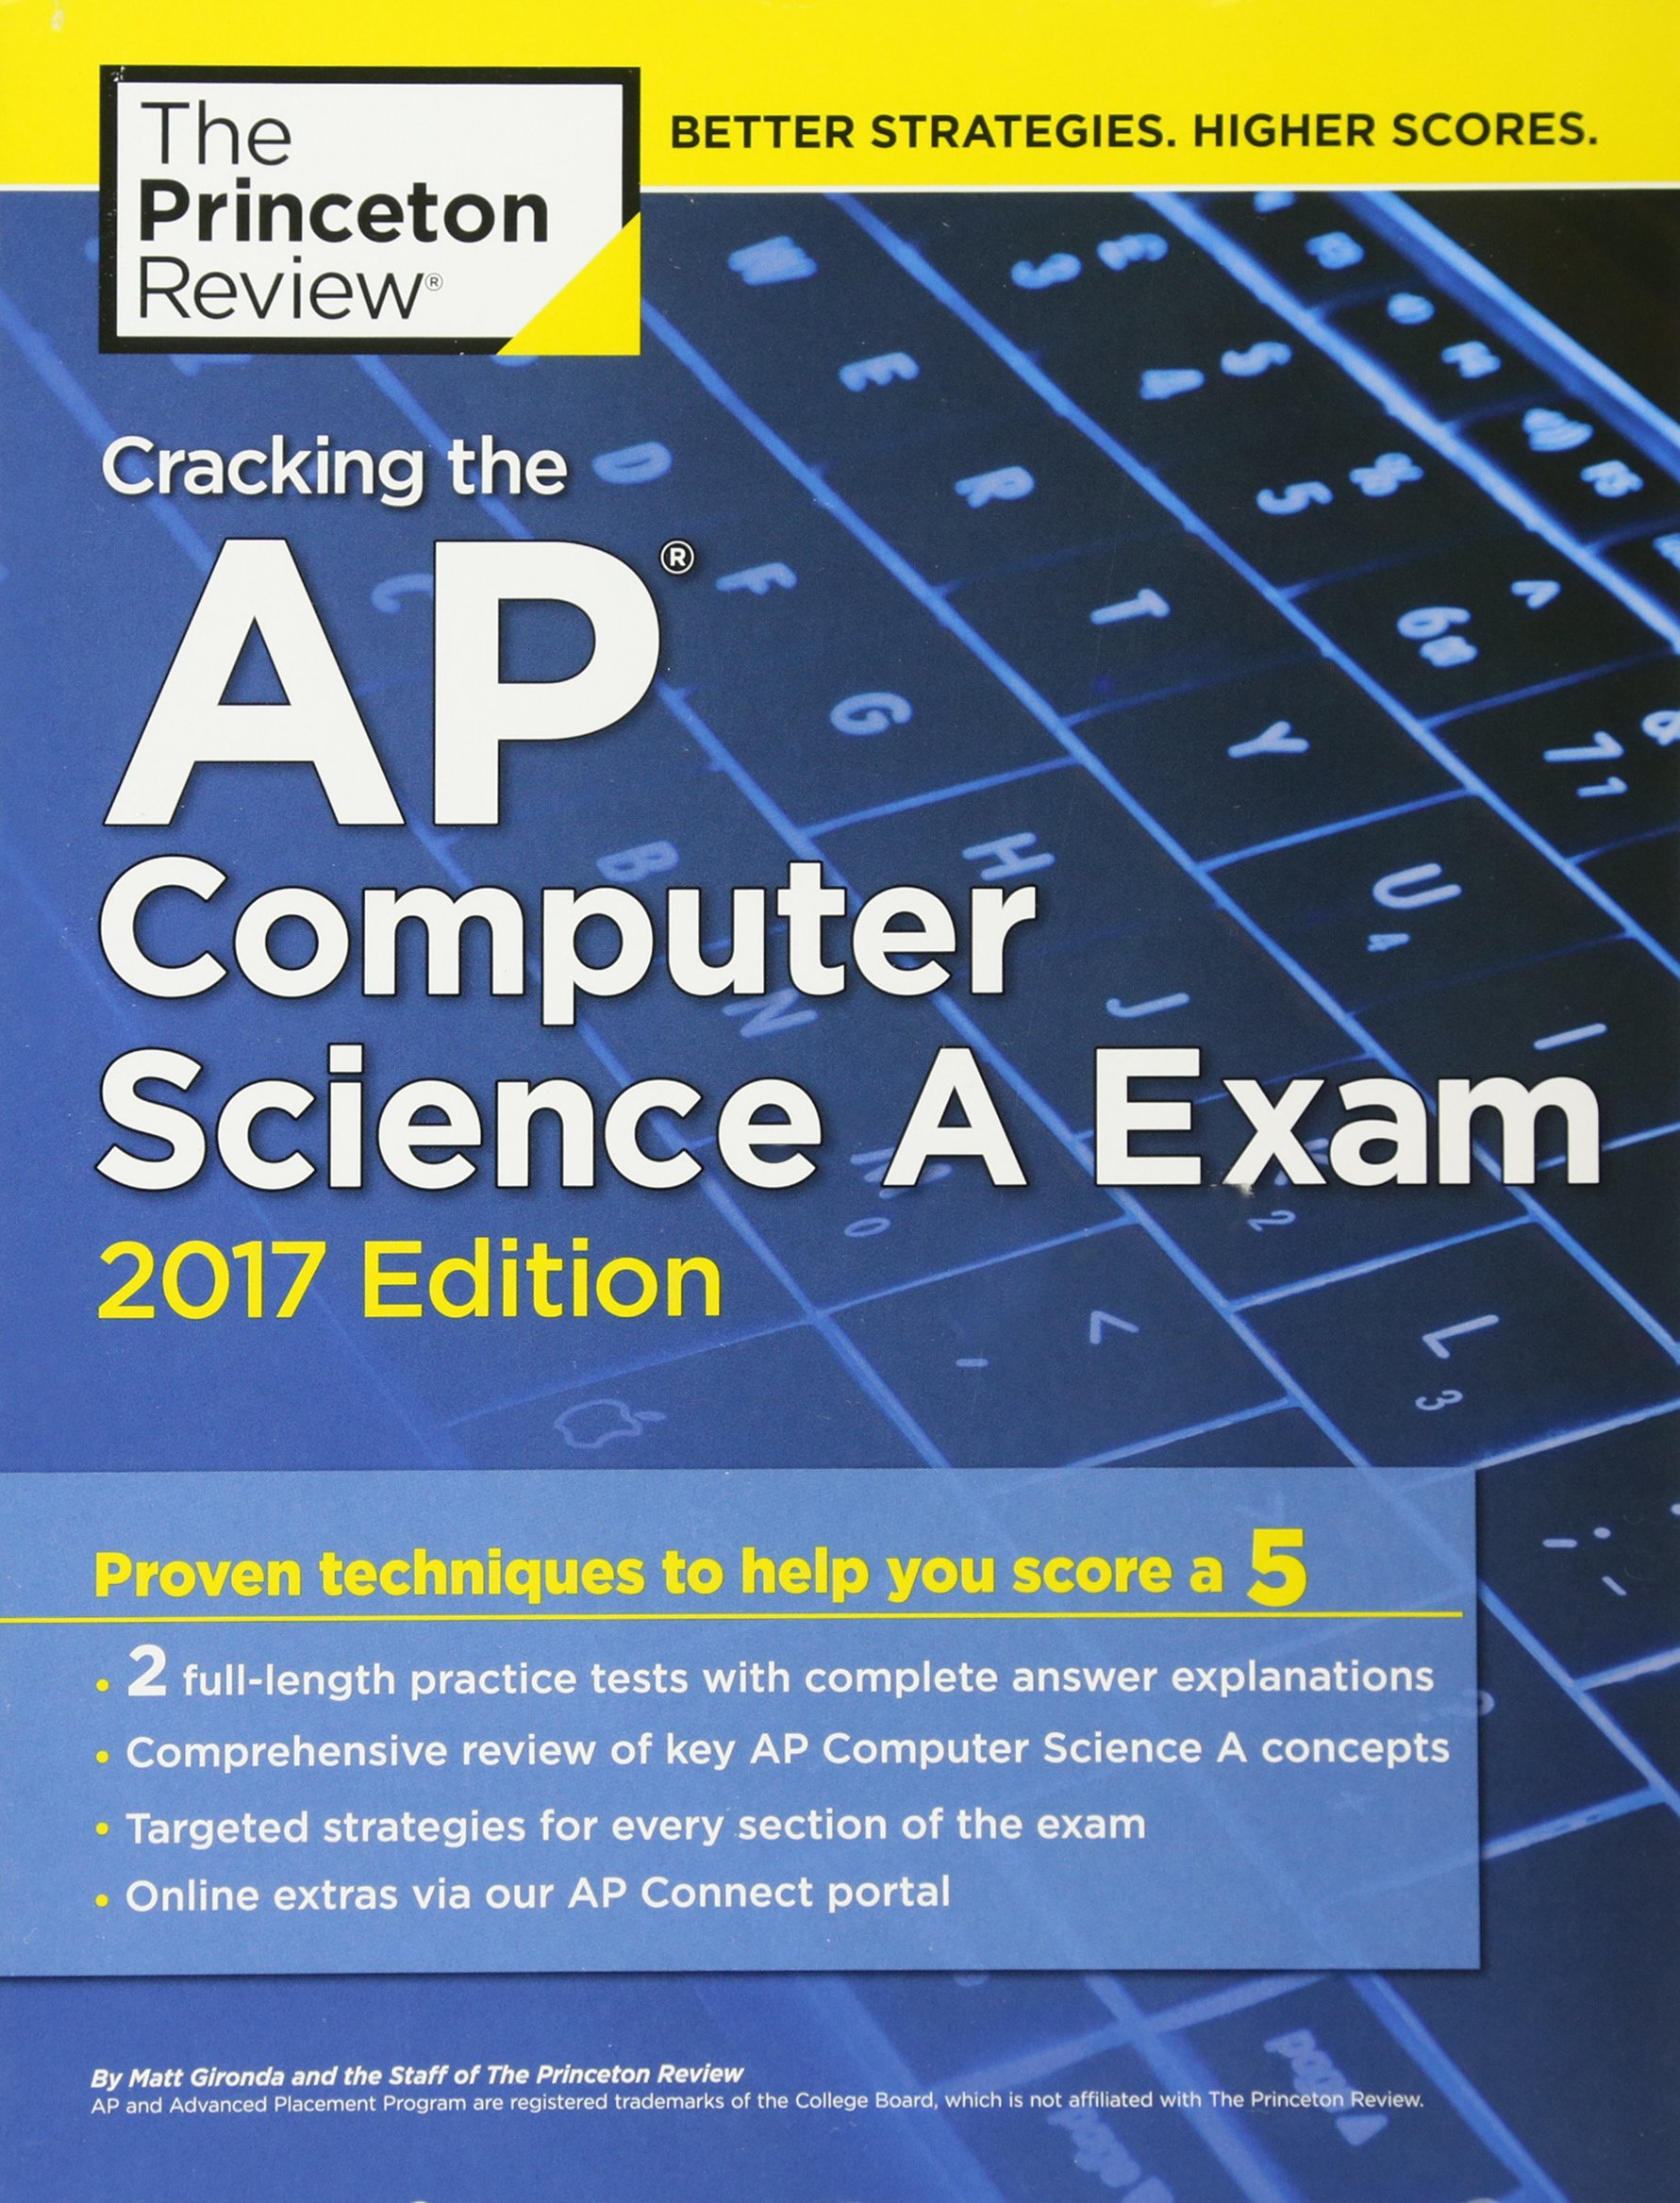 Cracking the AP Computer Science A Exam: 2017 Edition (College Test Prep):  Amazon.co.uk: Princeton Review: 9781101919880: Books